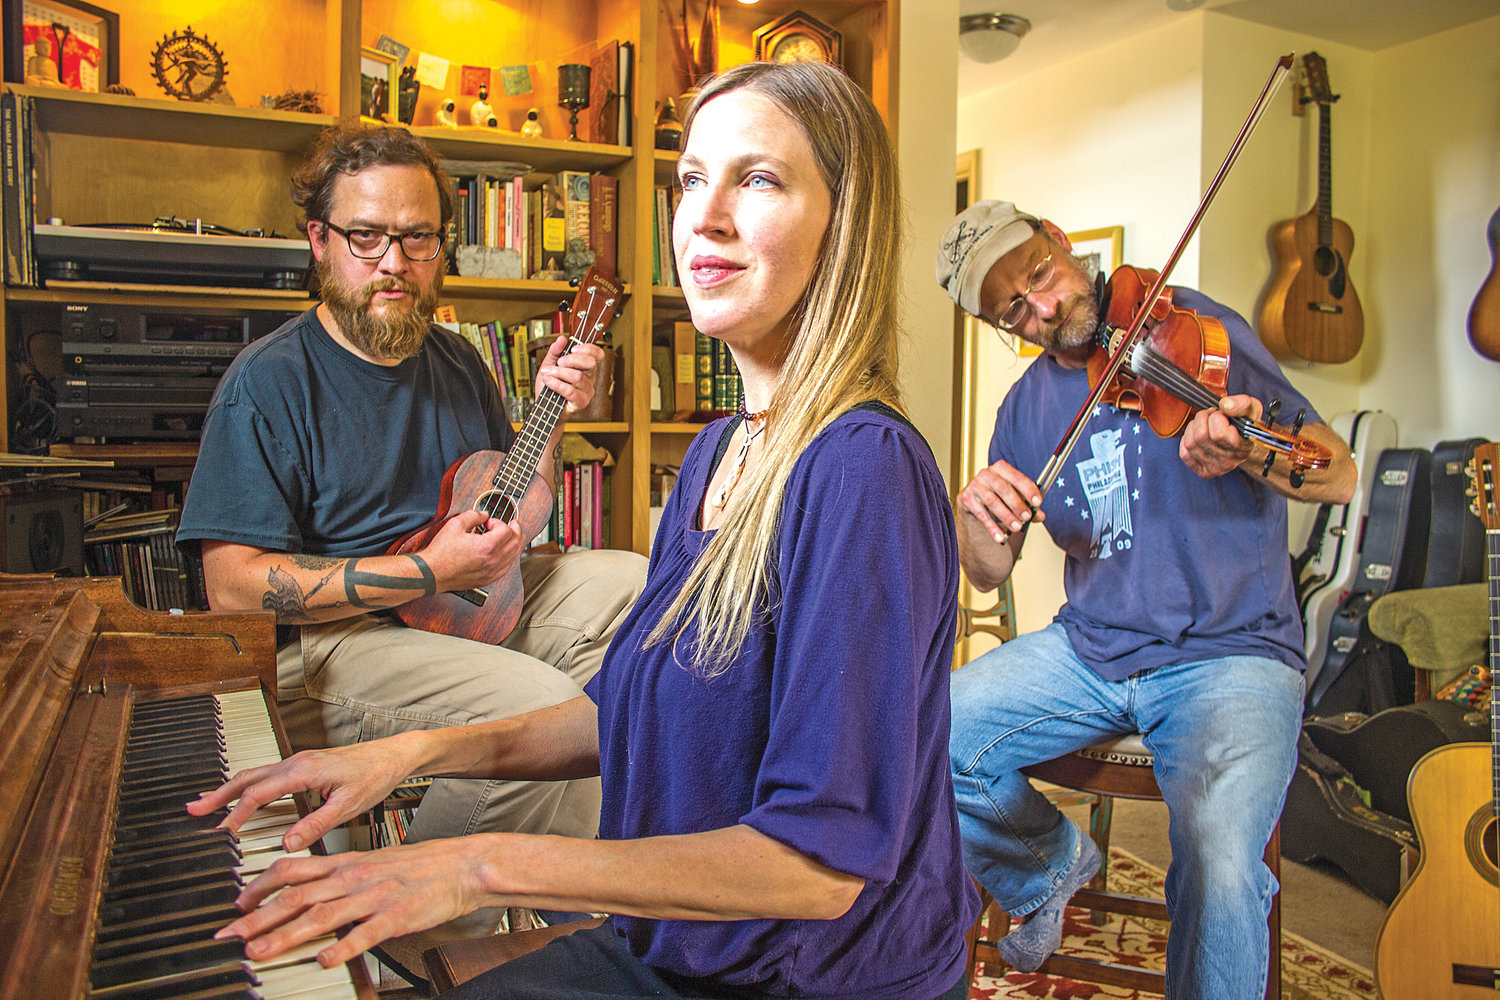 Janna Marit, center, Zach Parker, left, and Matt Sircely will perform with David Michael (not pictured) during an upcoming show in Port Townsend.